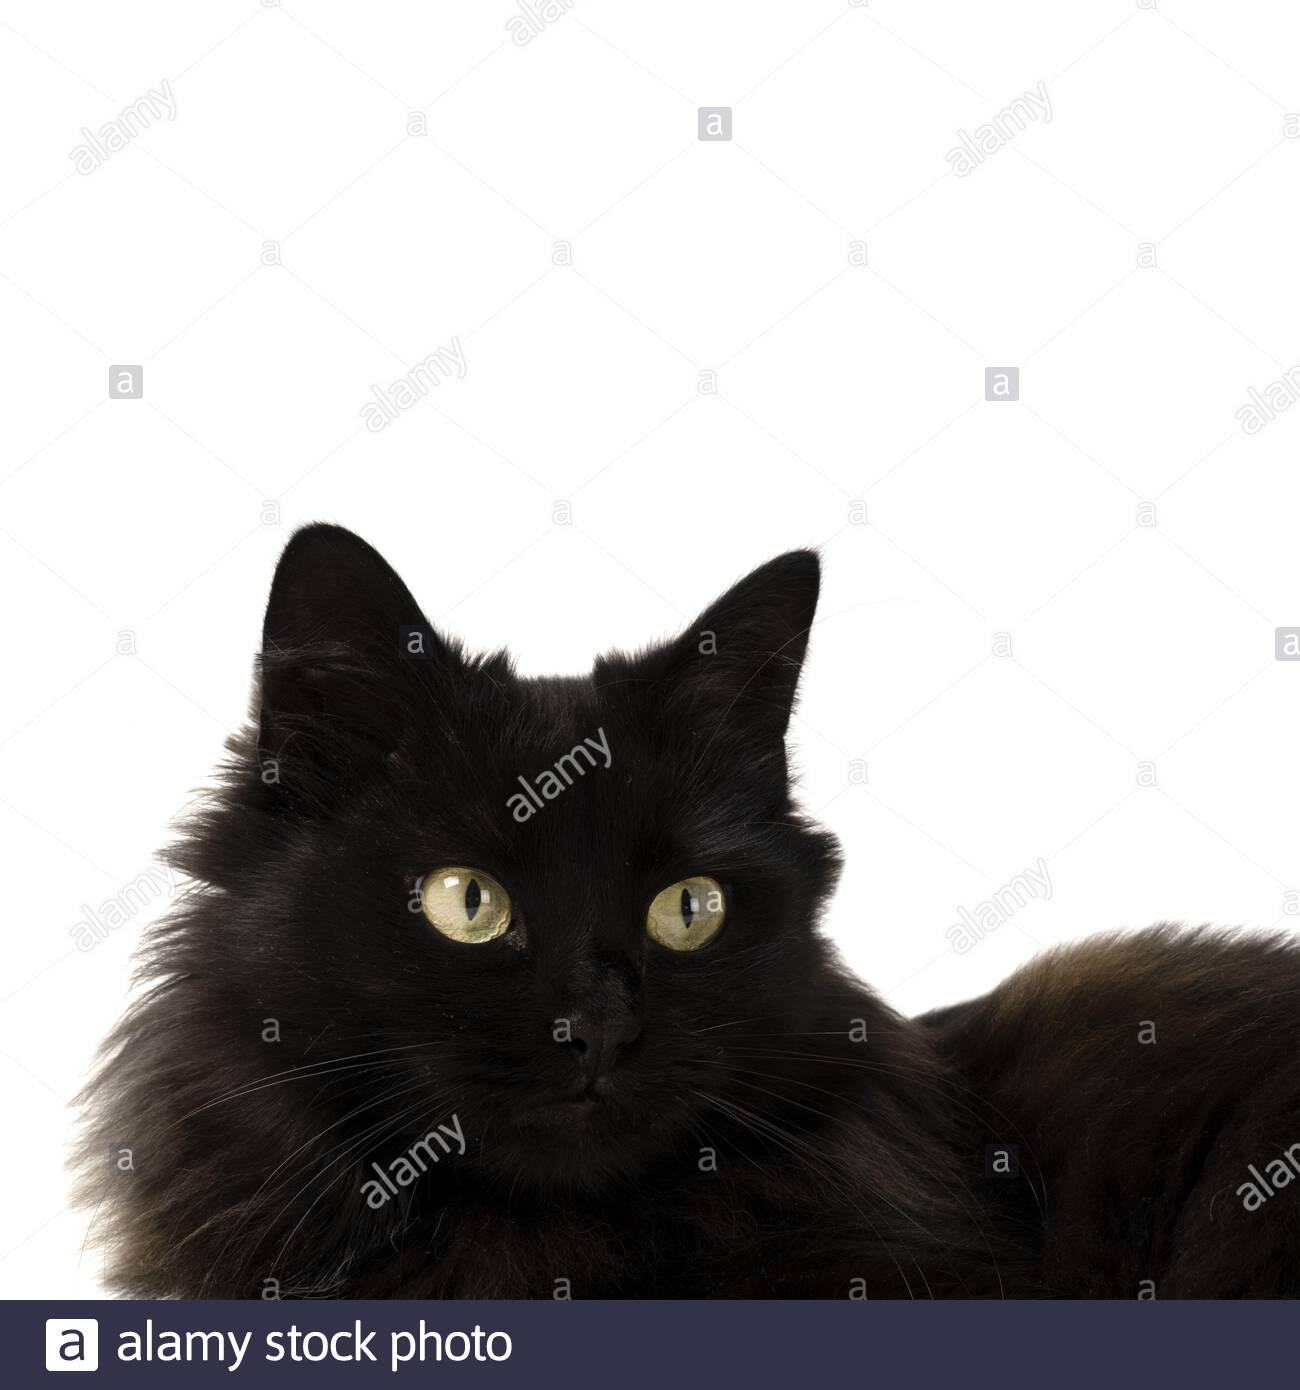 Black Cat With Yellow Eyes On A White Background Cropped Image Stock Photo Alamy